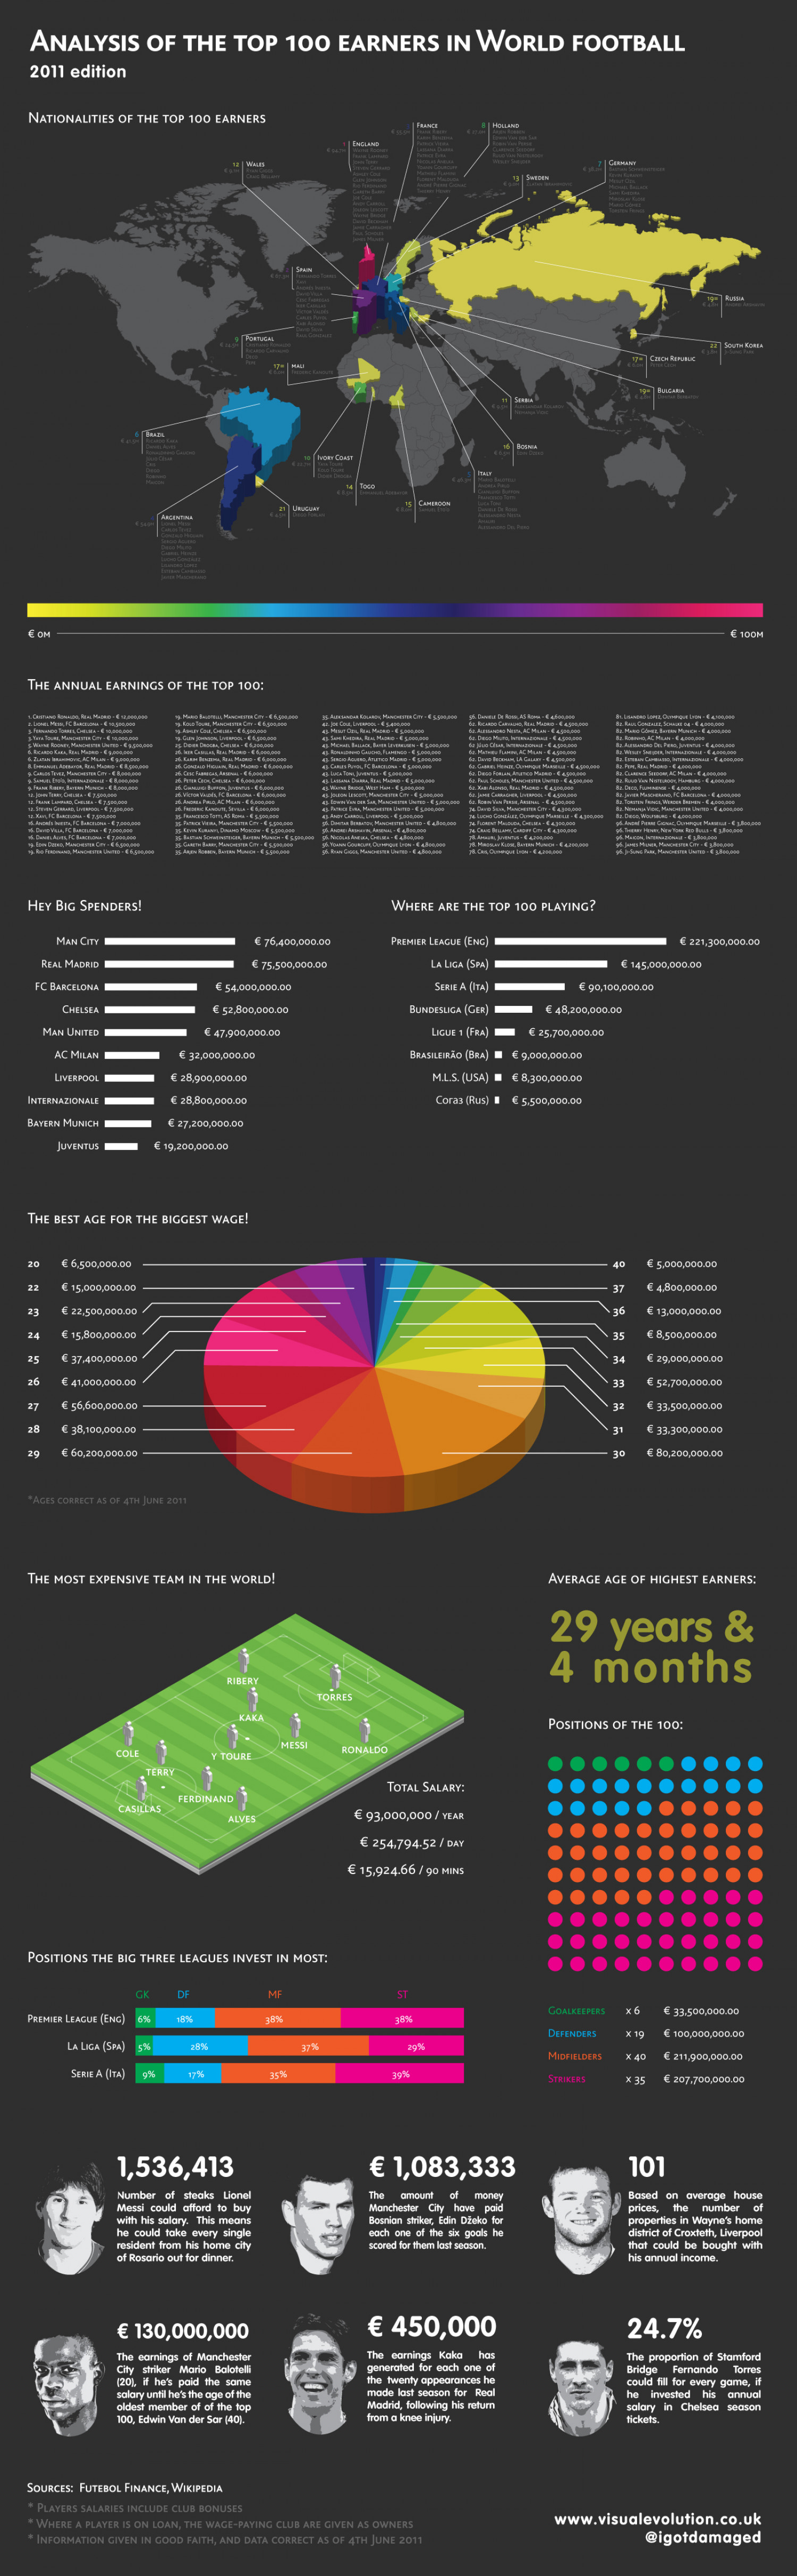 Analysis of the top 100 earners in World football - 2011 edition Infographic